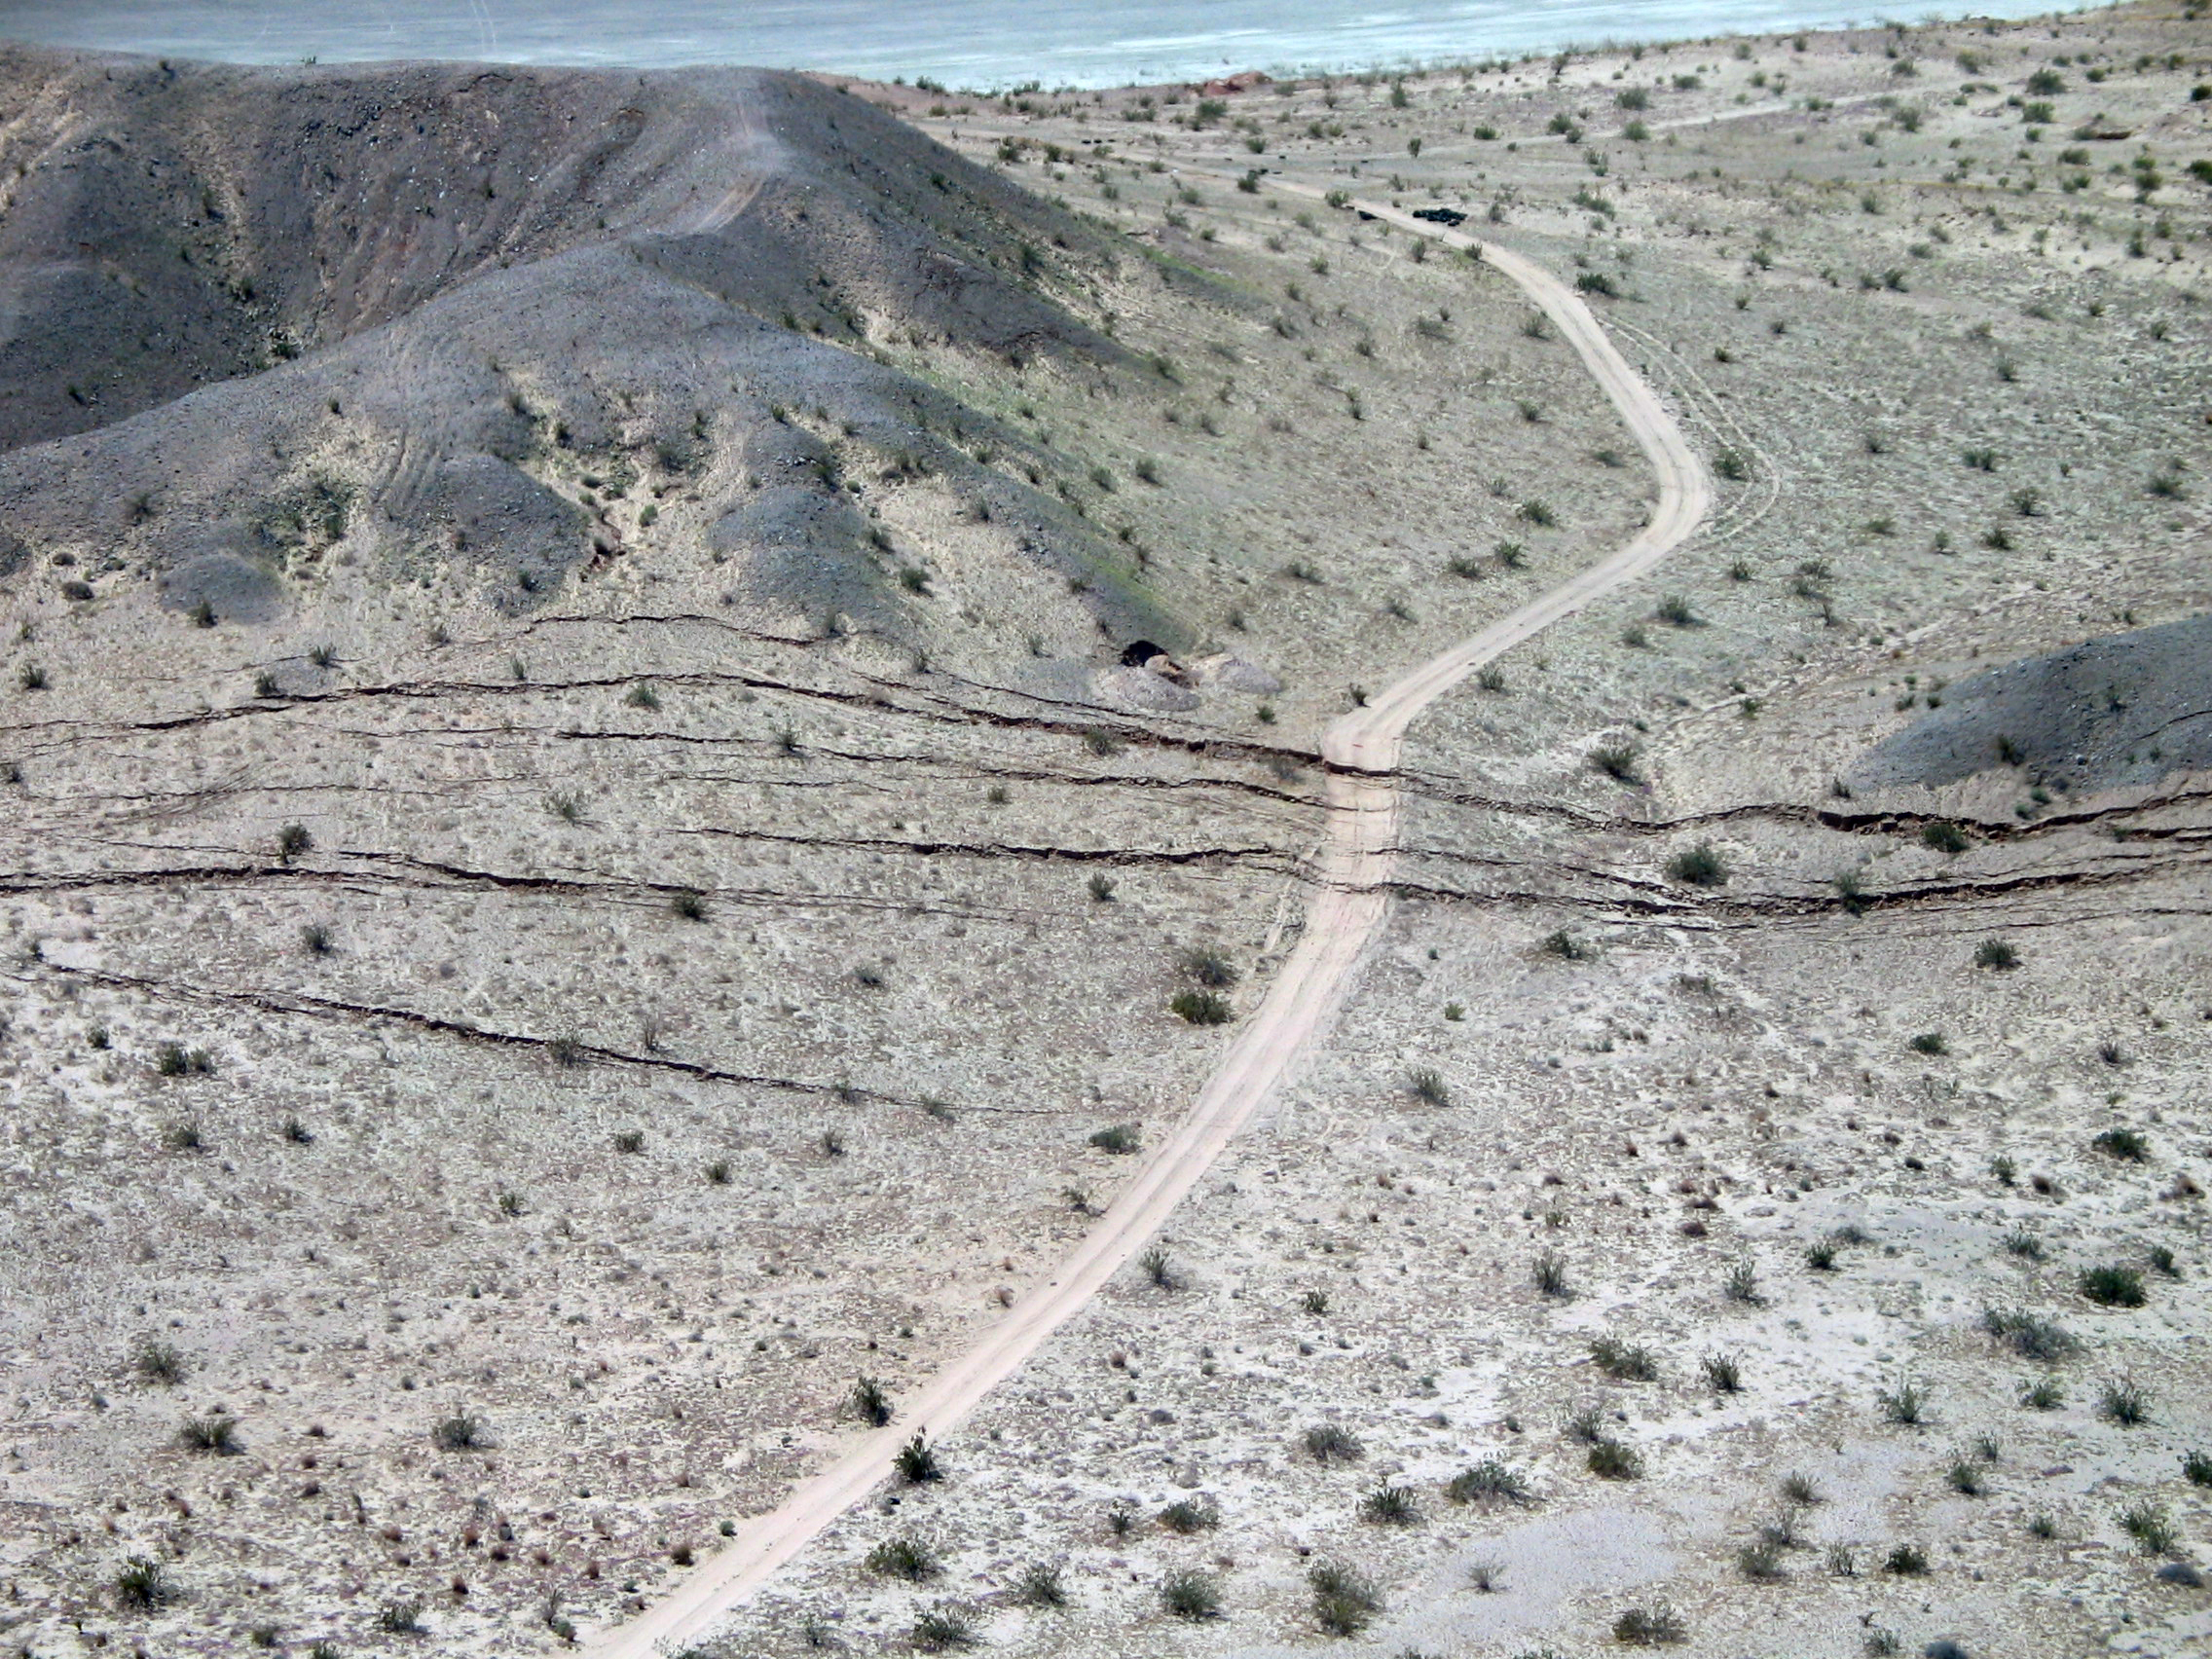 Baja california geophysical event response unavco view full scale image sciox Gallery